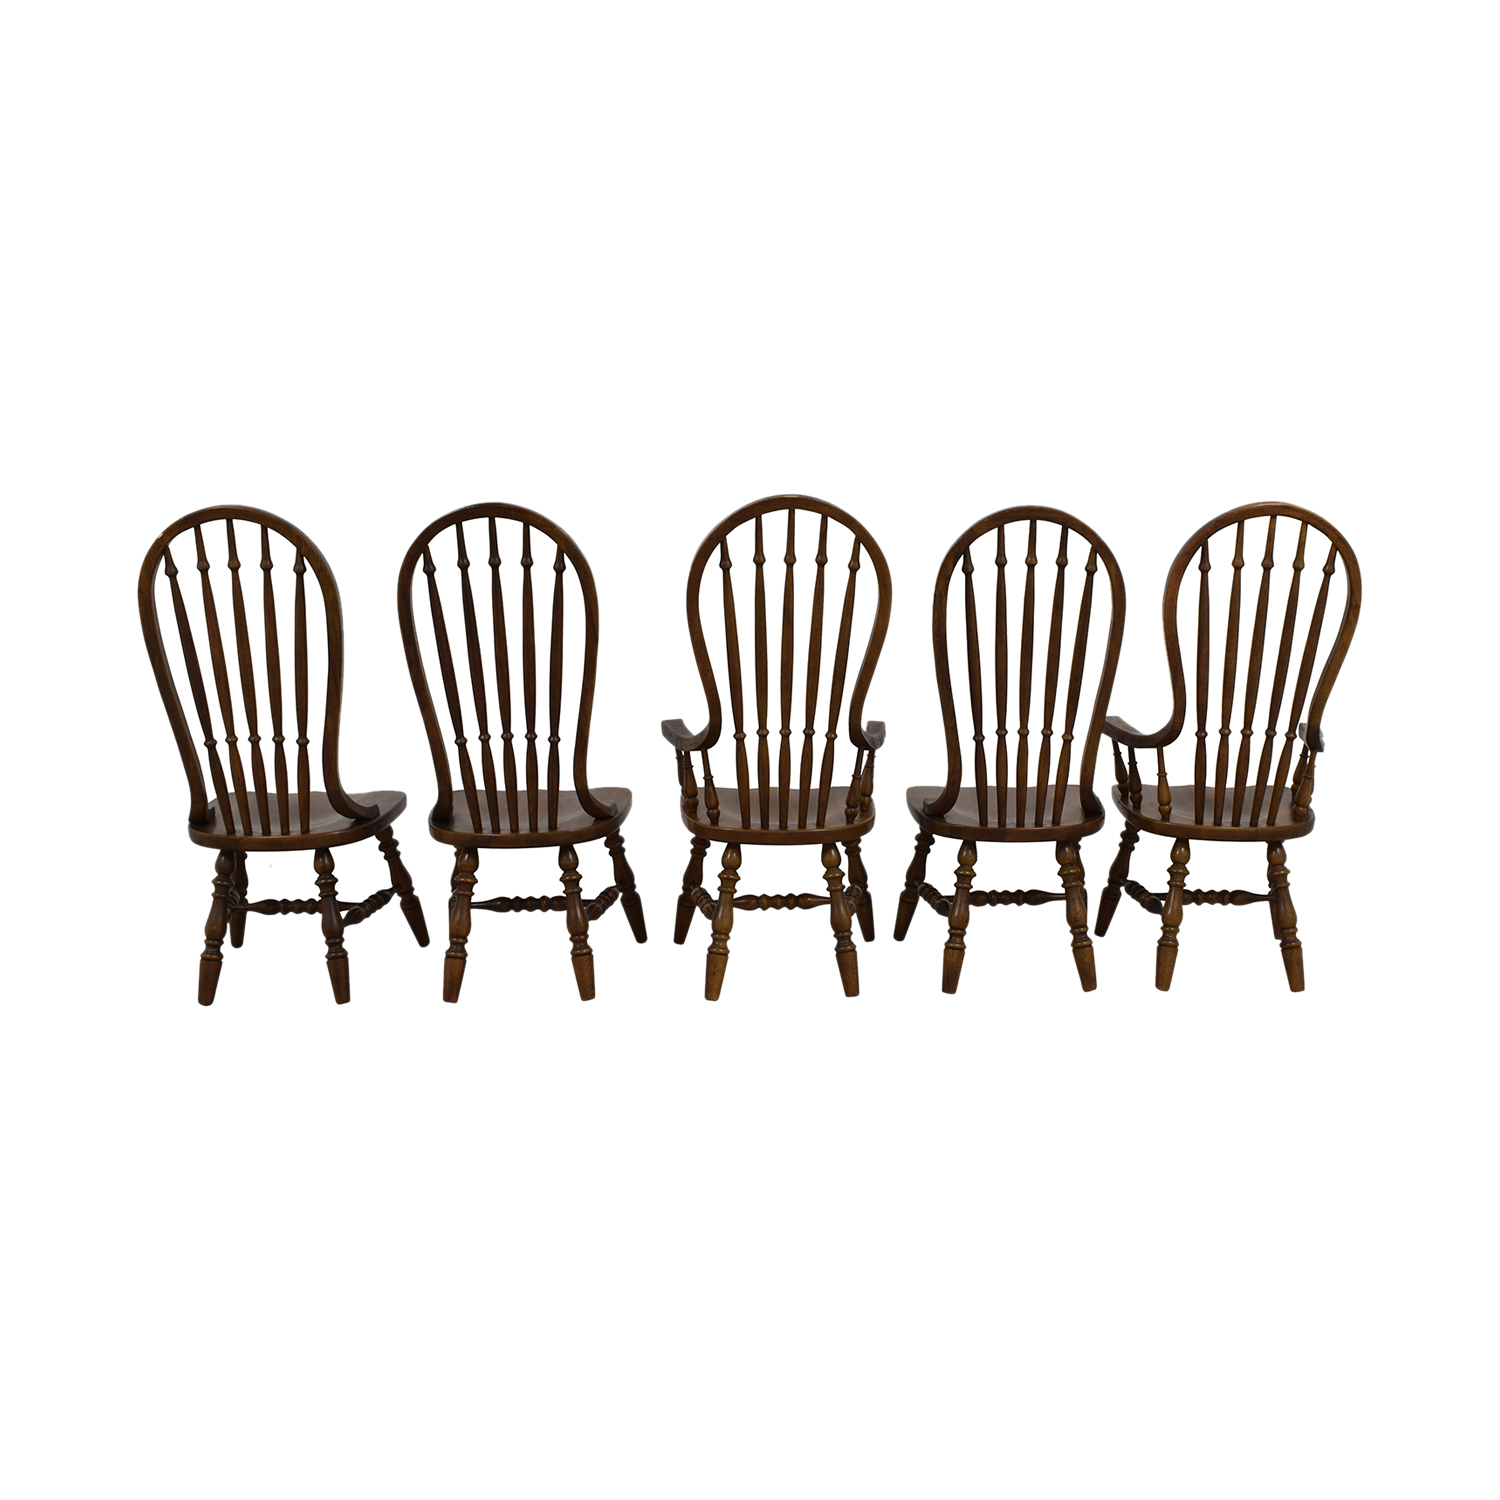 buy Antique Oak Spindle Dining Chairs